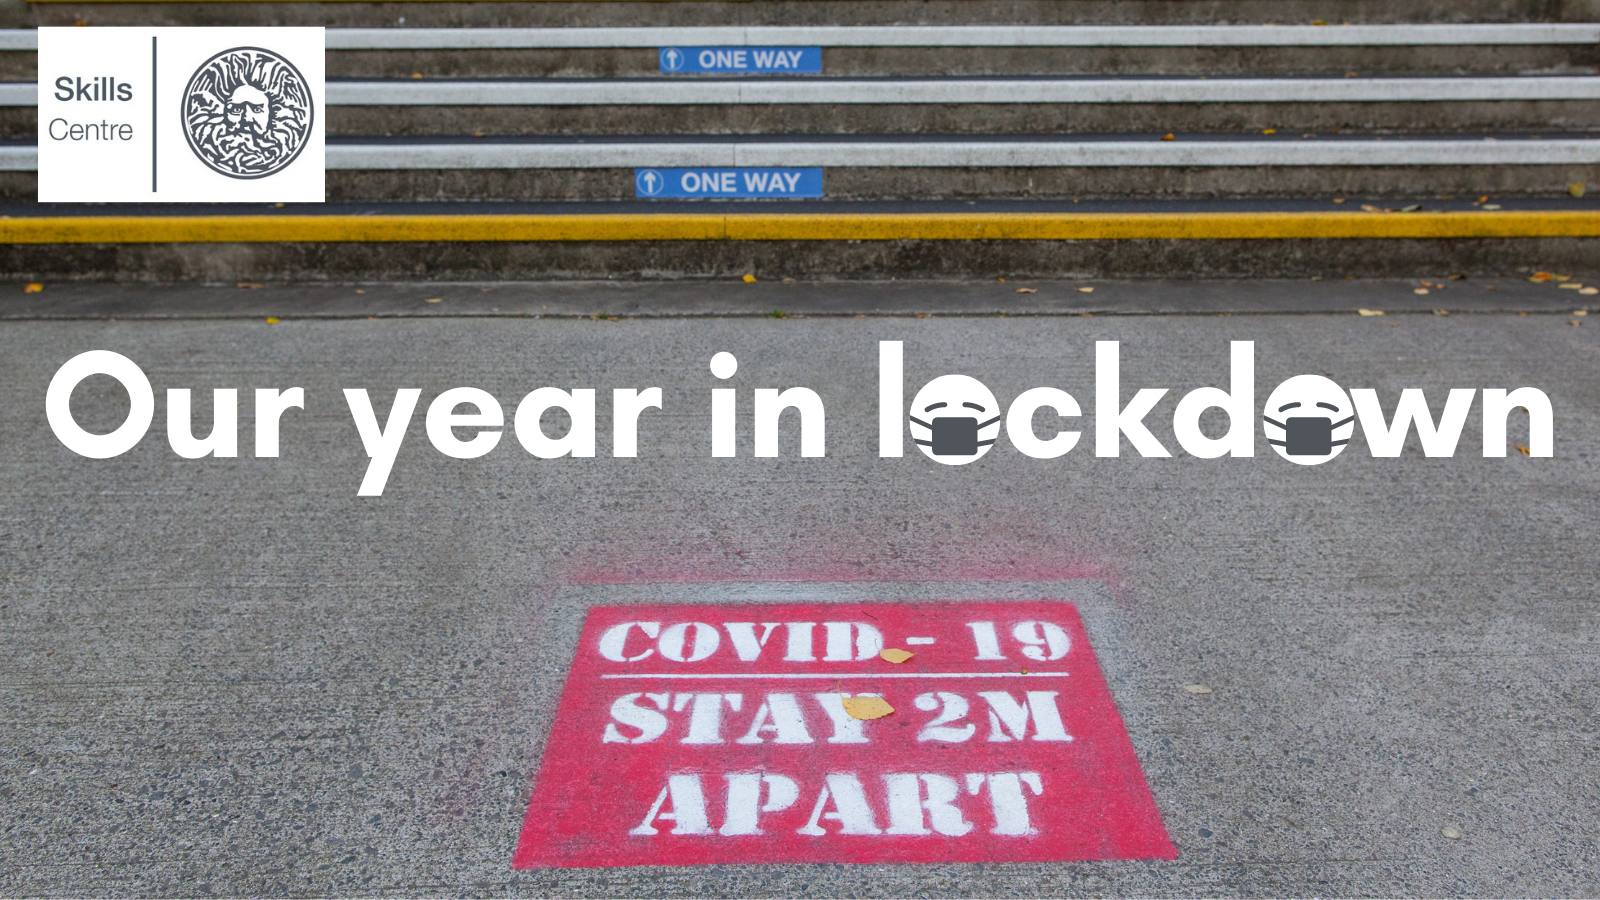 A sign saying 'Covid 19 - stay 2 metres apart' is spray-painted onto the pavement on campus by some steps which have one way arrows on them. Skills Centre logo. Title says 'Our year in lockdown' and icons of facemasks cover the letters 'o' in 'lockdown'.